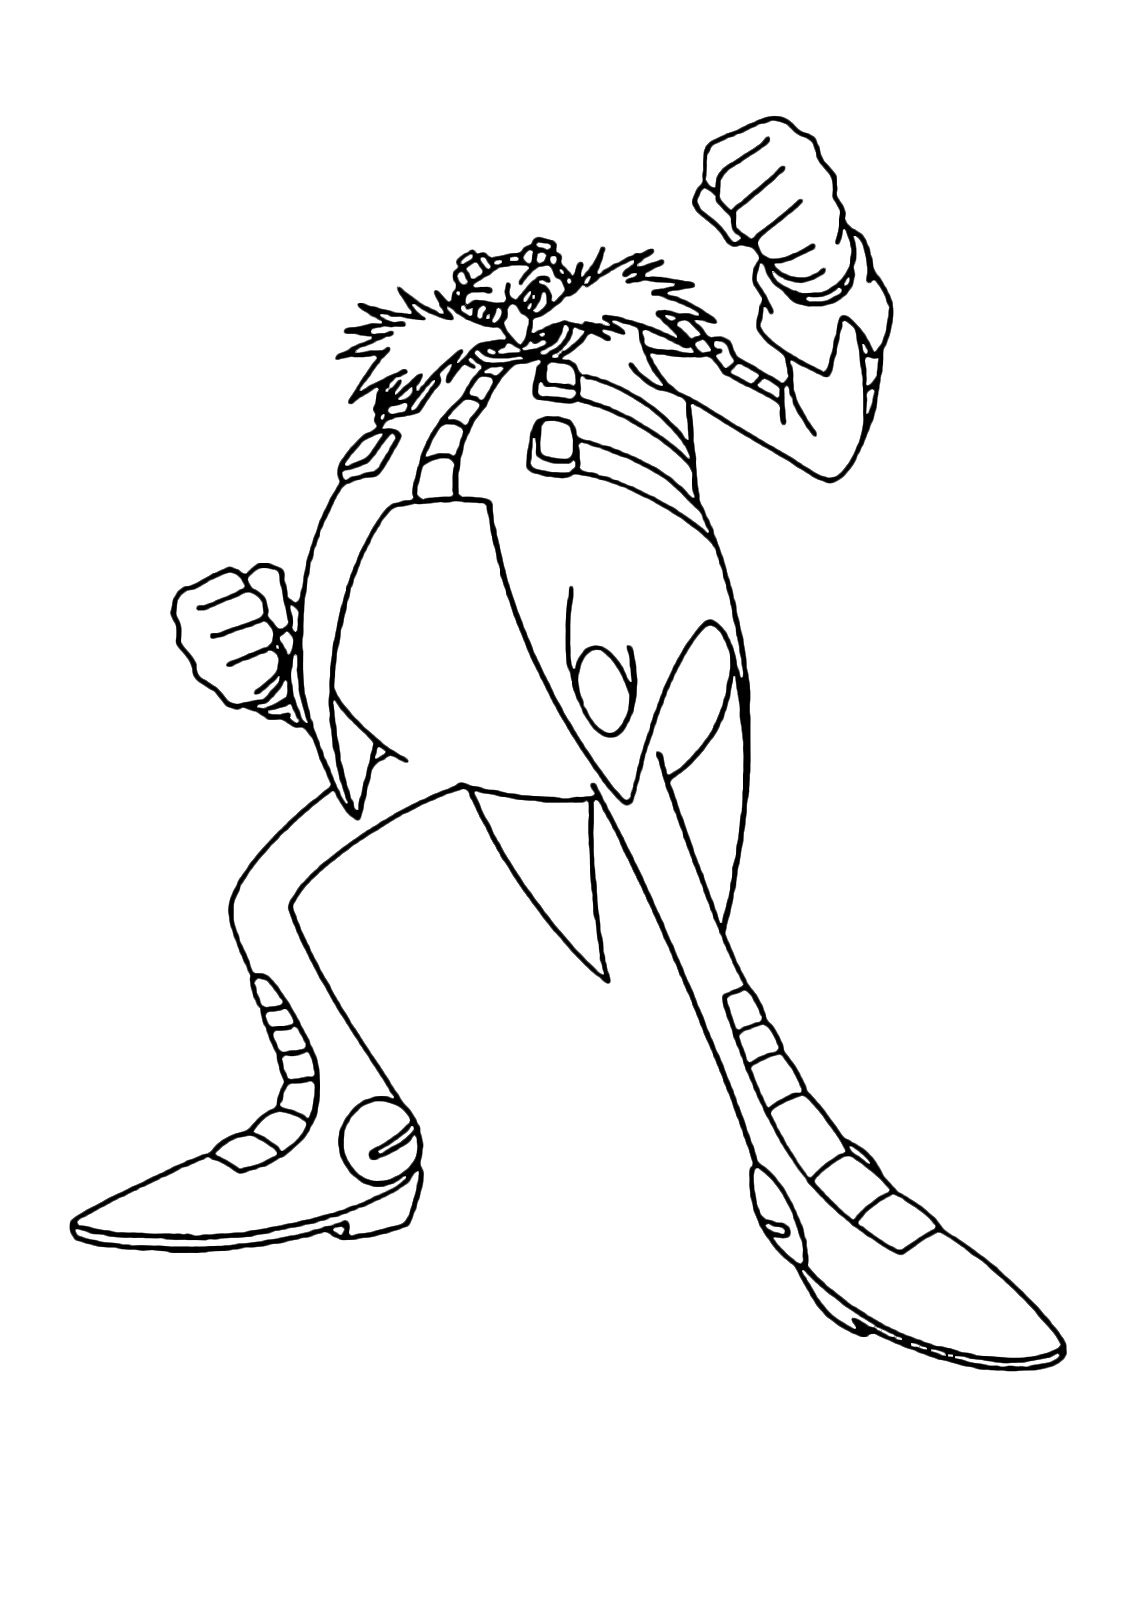 Sonic Eggman Coloring Pages Coloring Pages Allow Kids To Accompany Their Favorite Characters On An Adventure Our F Coloring Pages Free Coloring Pages Color